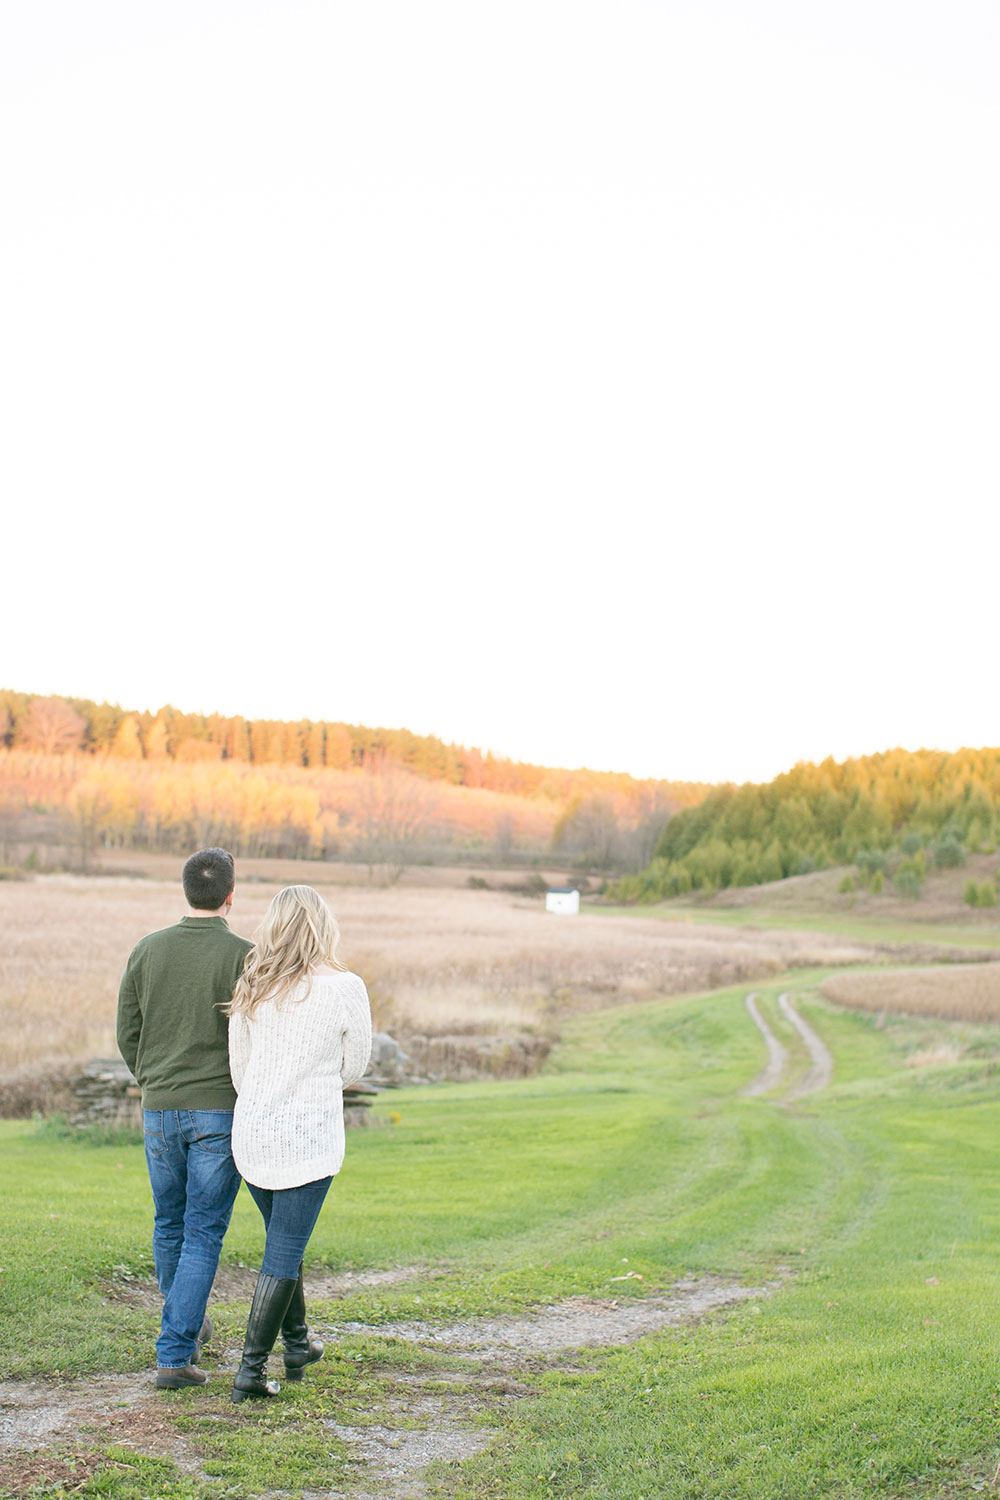 Albion-Hills-Conservation-Park-engagement-session-caledon-photo-by-philosophy-studios-eva-derrick-photography-024.jpg